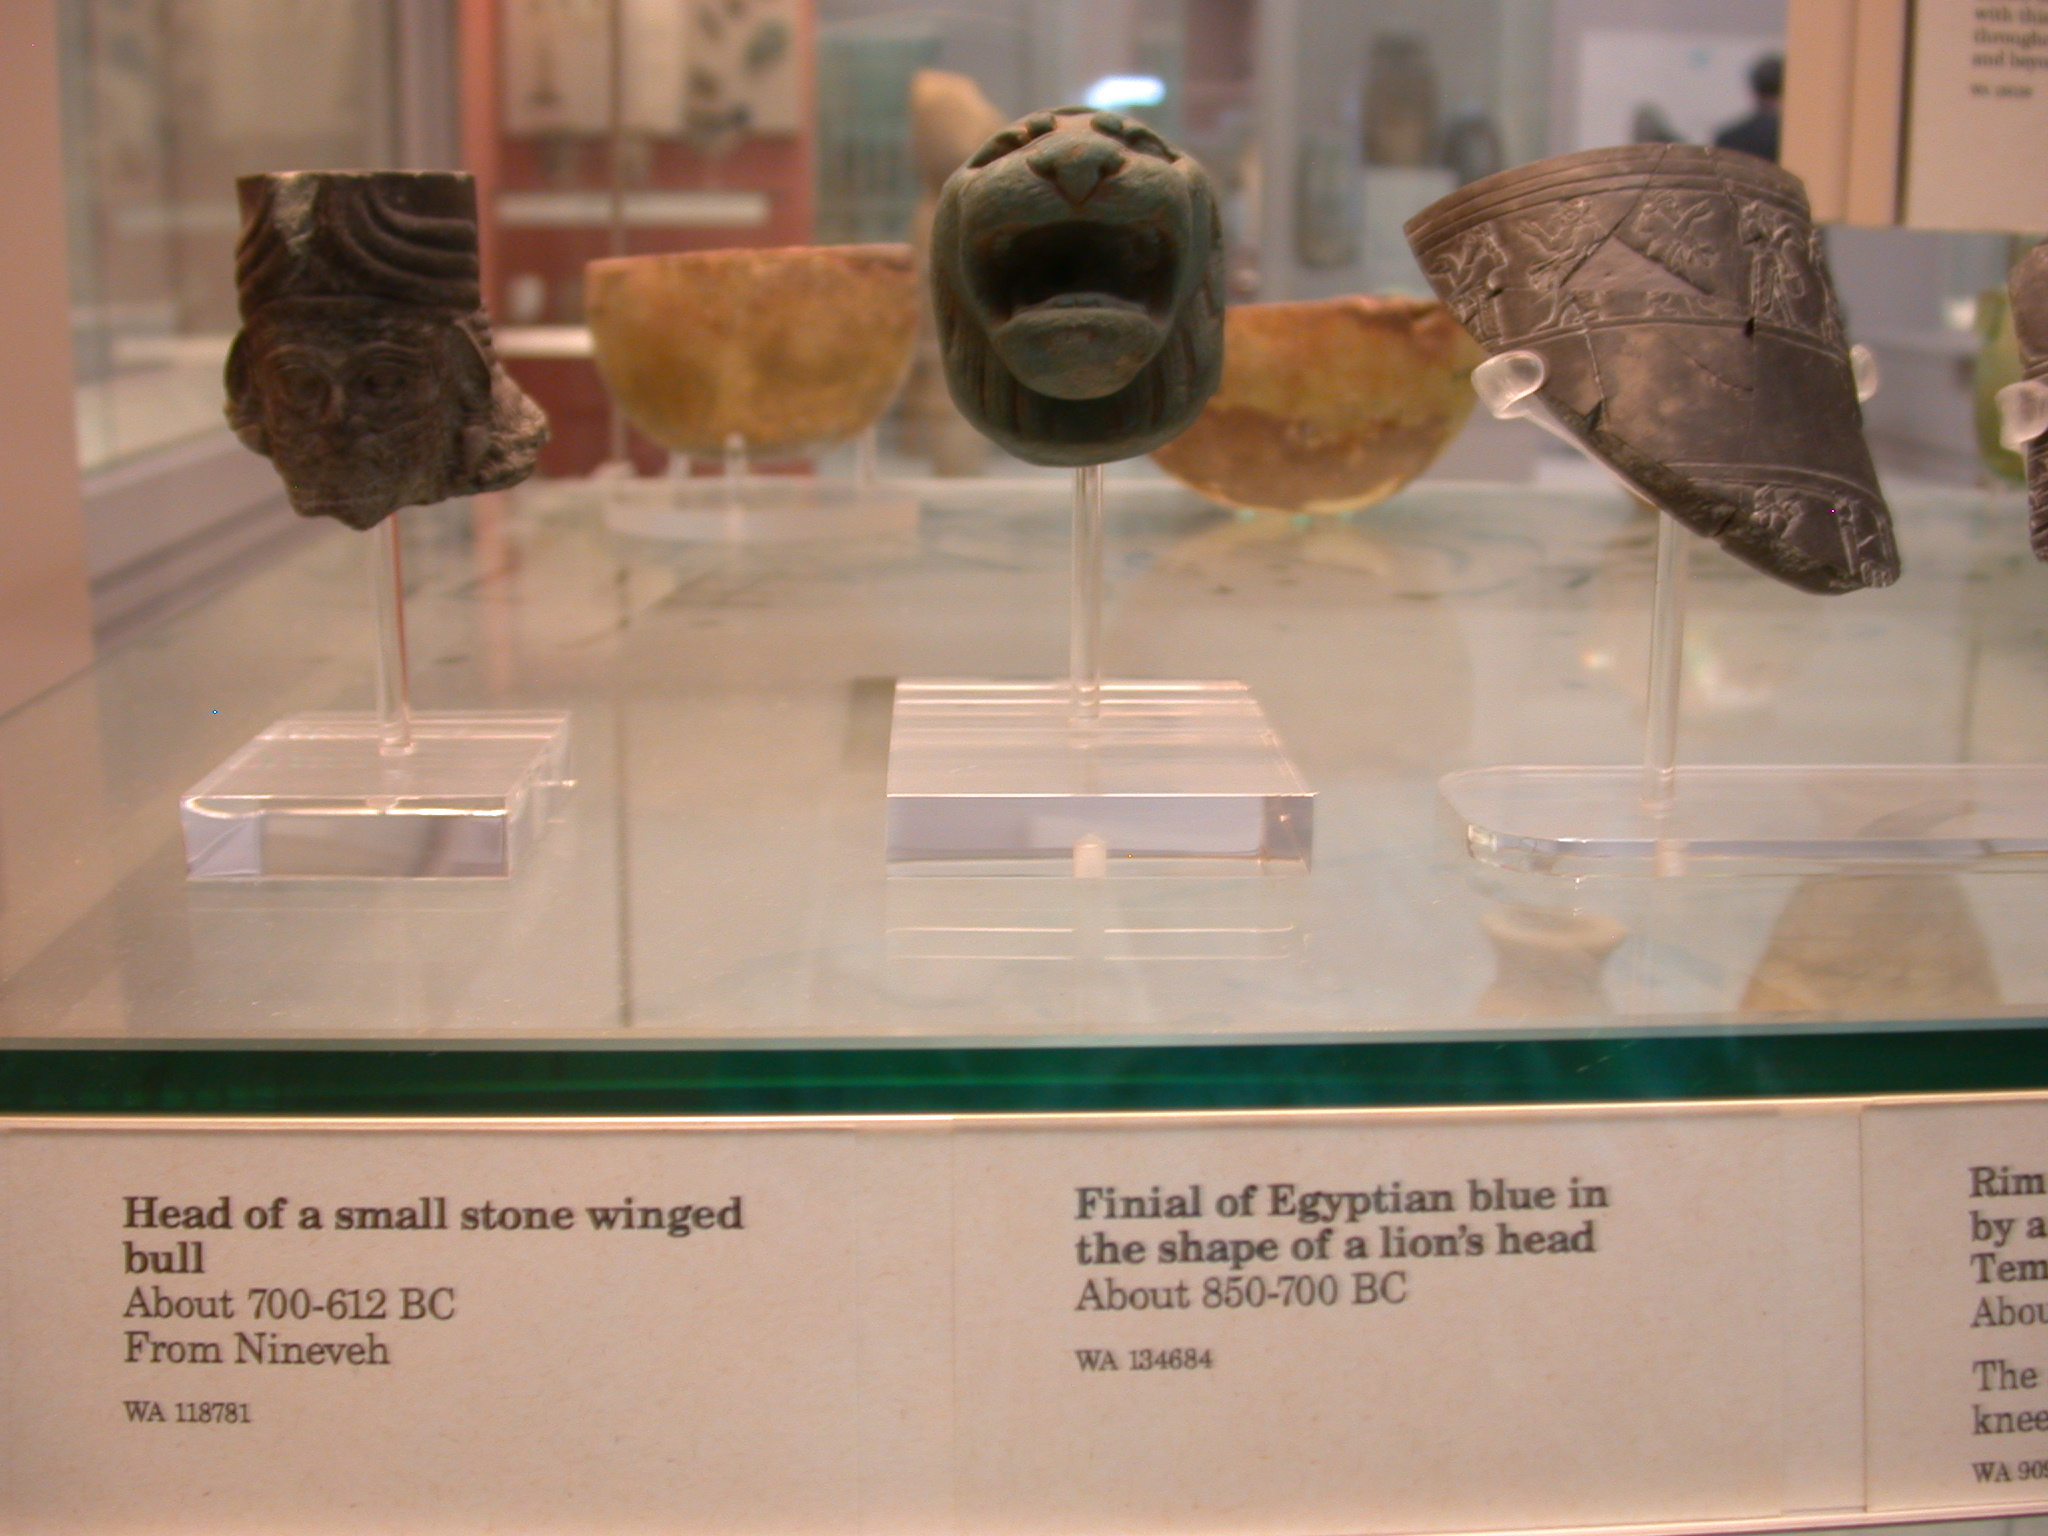 Head of Small Winged Bull, Stone, 700-612 BCE, Nineveh, Assyria, and Finial in Shape of Lion Head, Egyptian Blue, About 850-750 BCE, Assyria, in British Museum, London, England